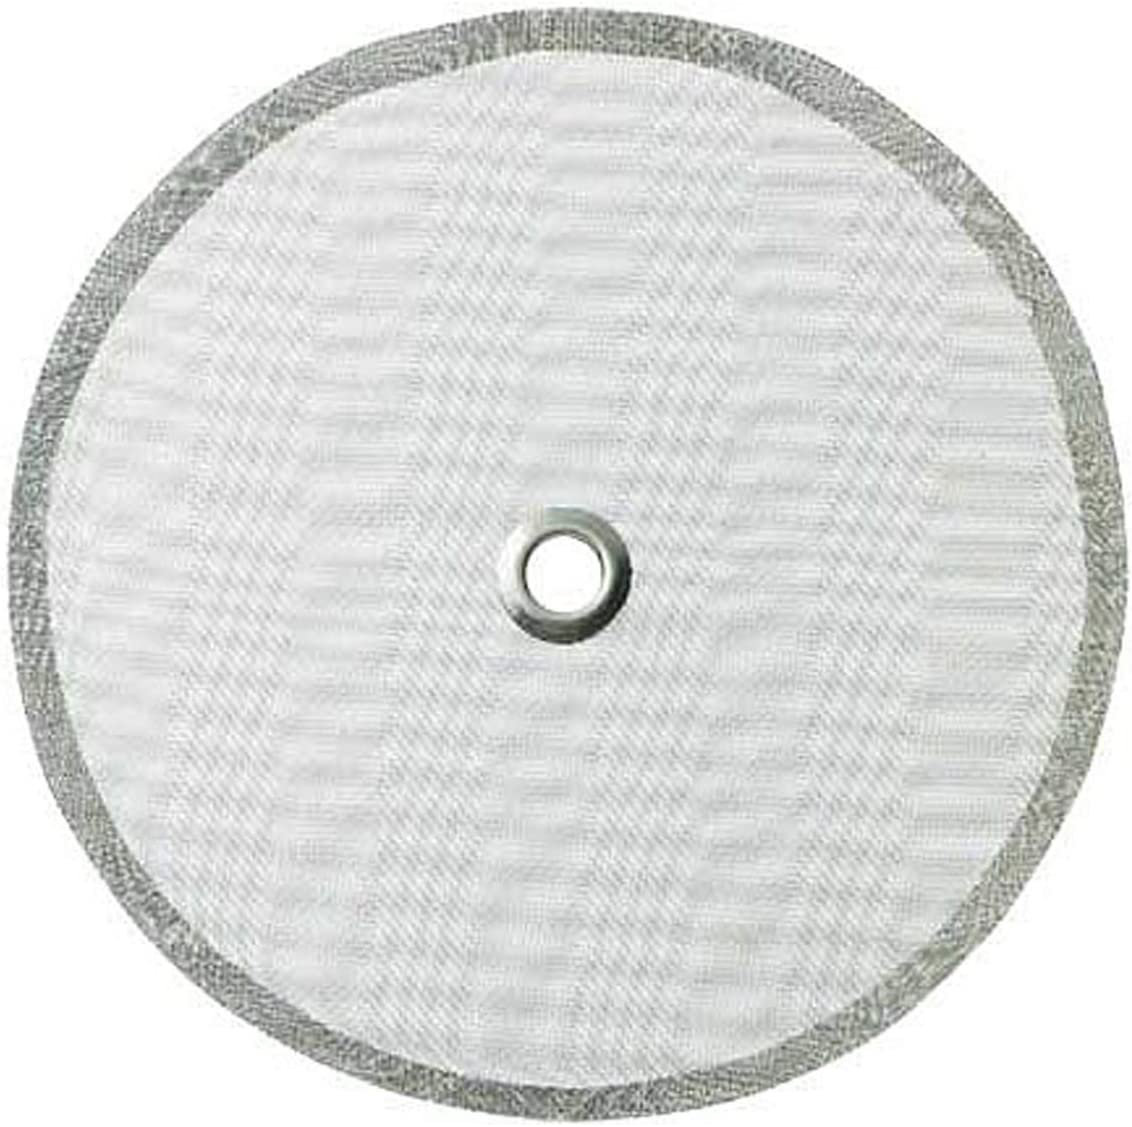 Aerolatte Long-awaited Universal Replacement Filter Now on sale Mesh for Screen 5-Cup Fre